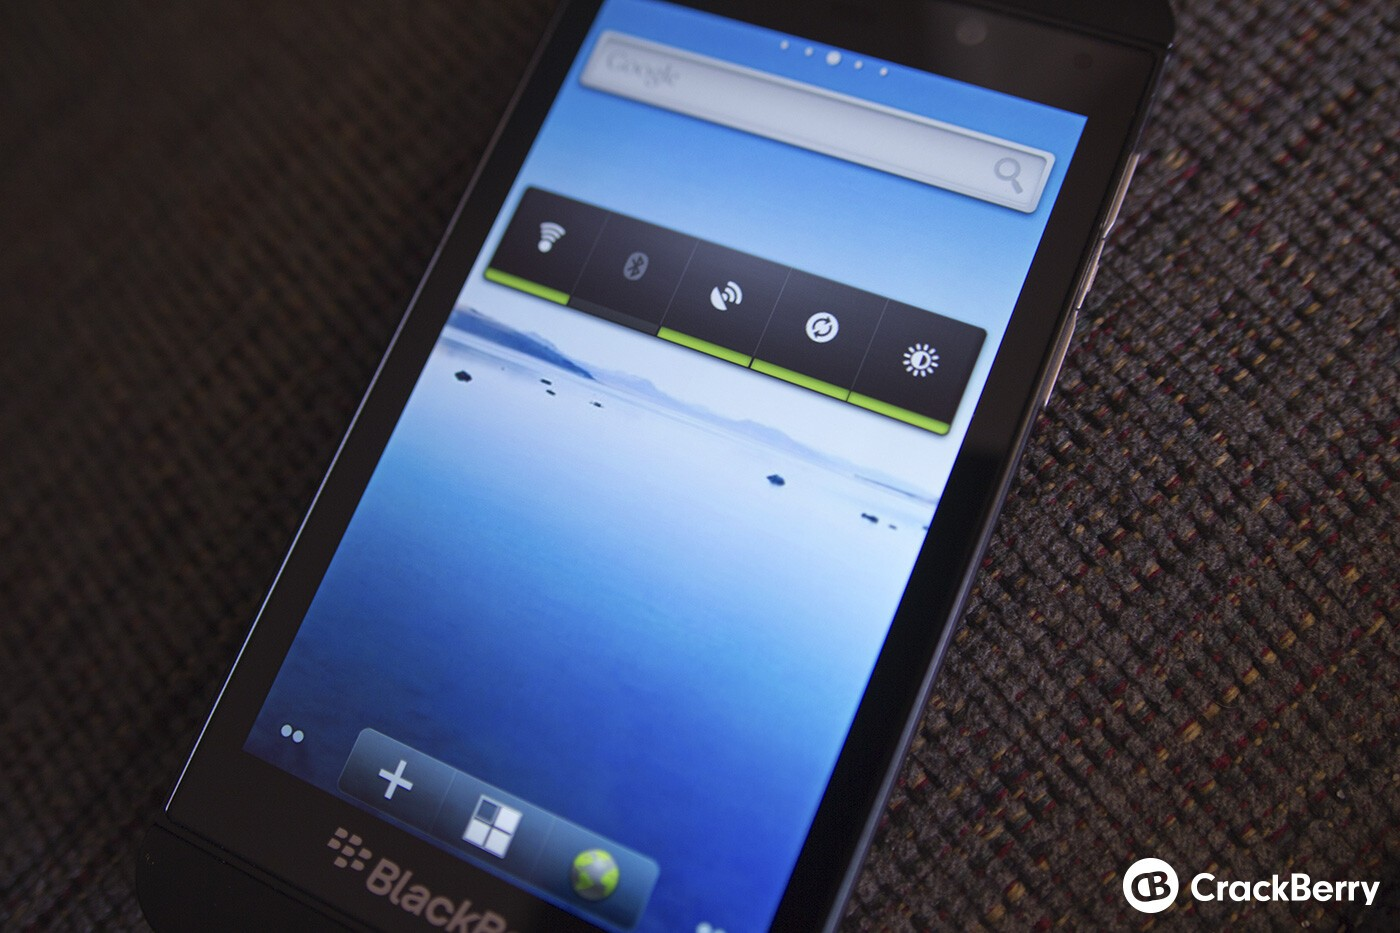 BlackBerry Z10 with Android launcher